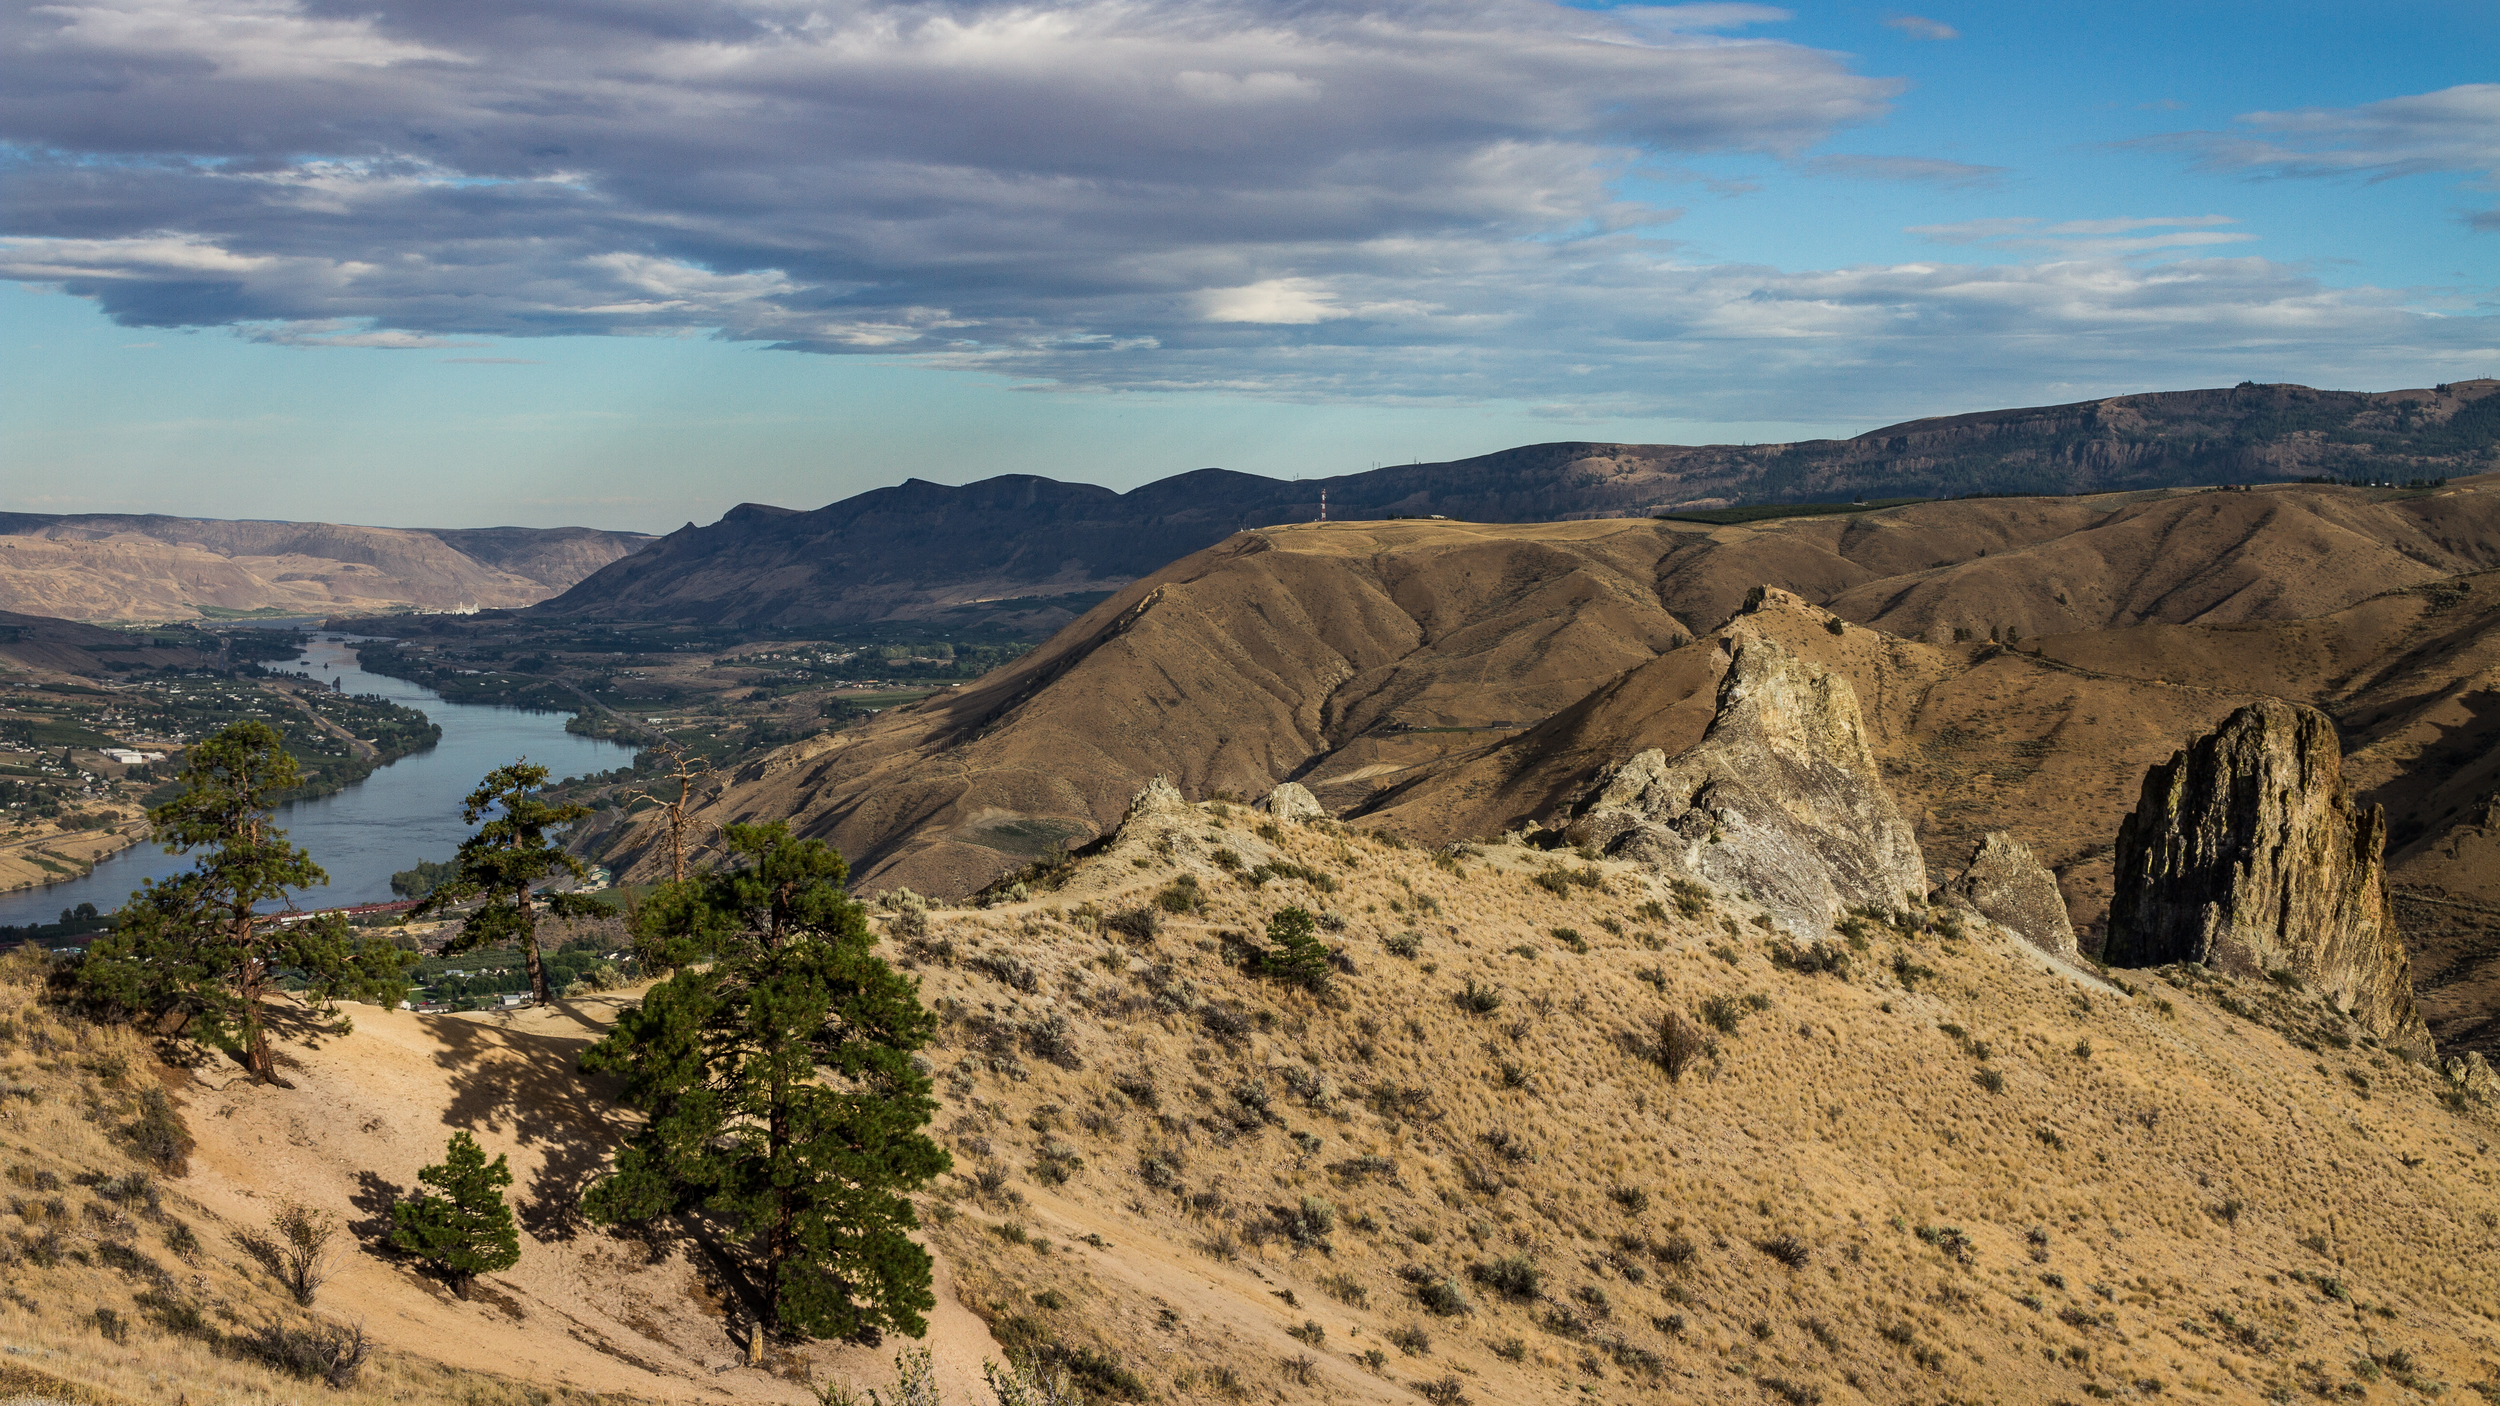 wenatchee hike+video 059-2.jpg